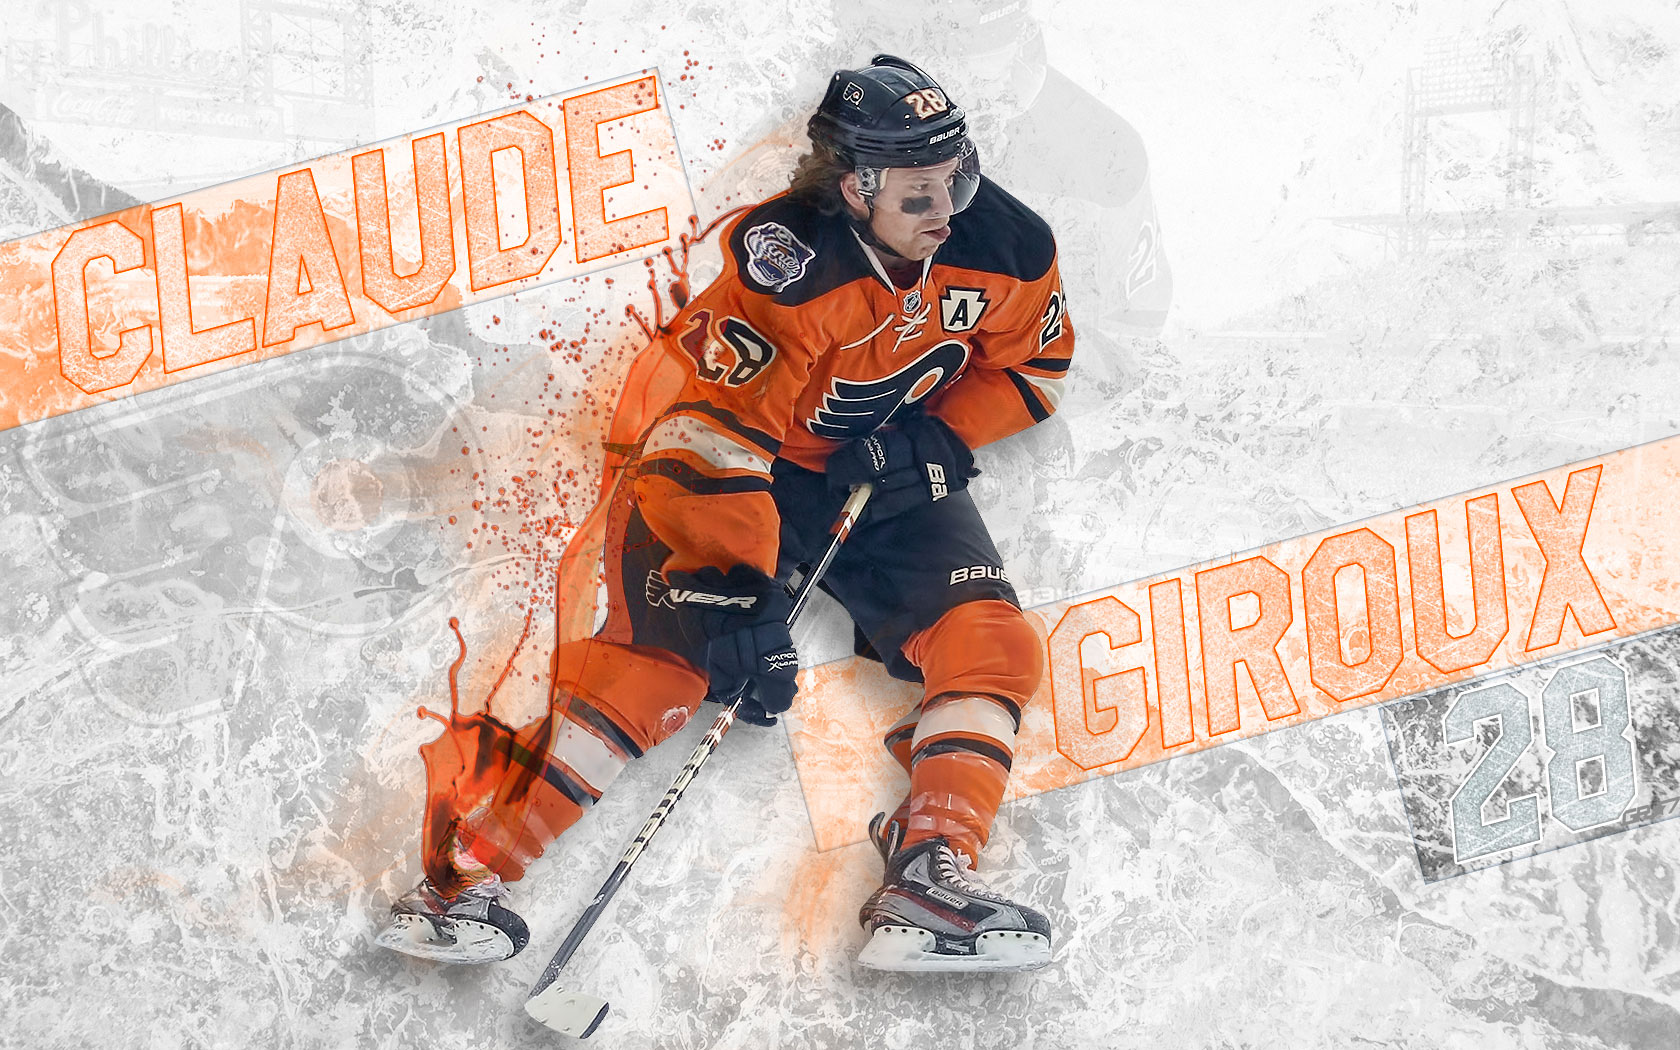 NHL Wallpapers   Claude Giroux Philadelphia Flyers 1680x1050 wallpaper 1680x1050